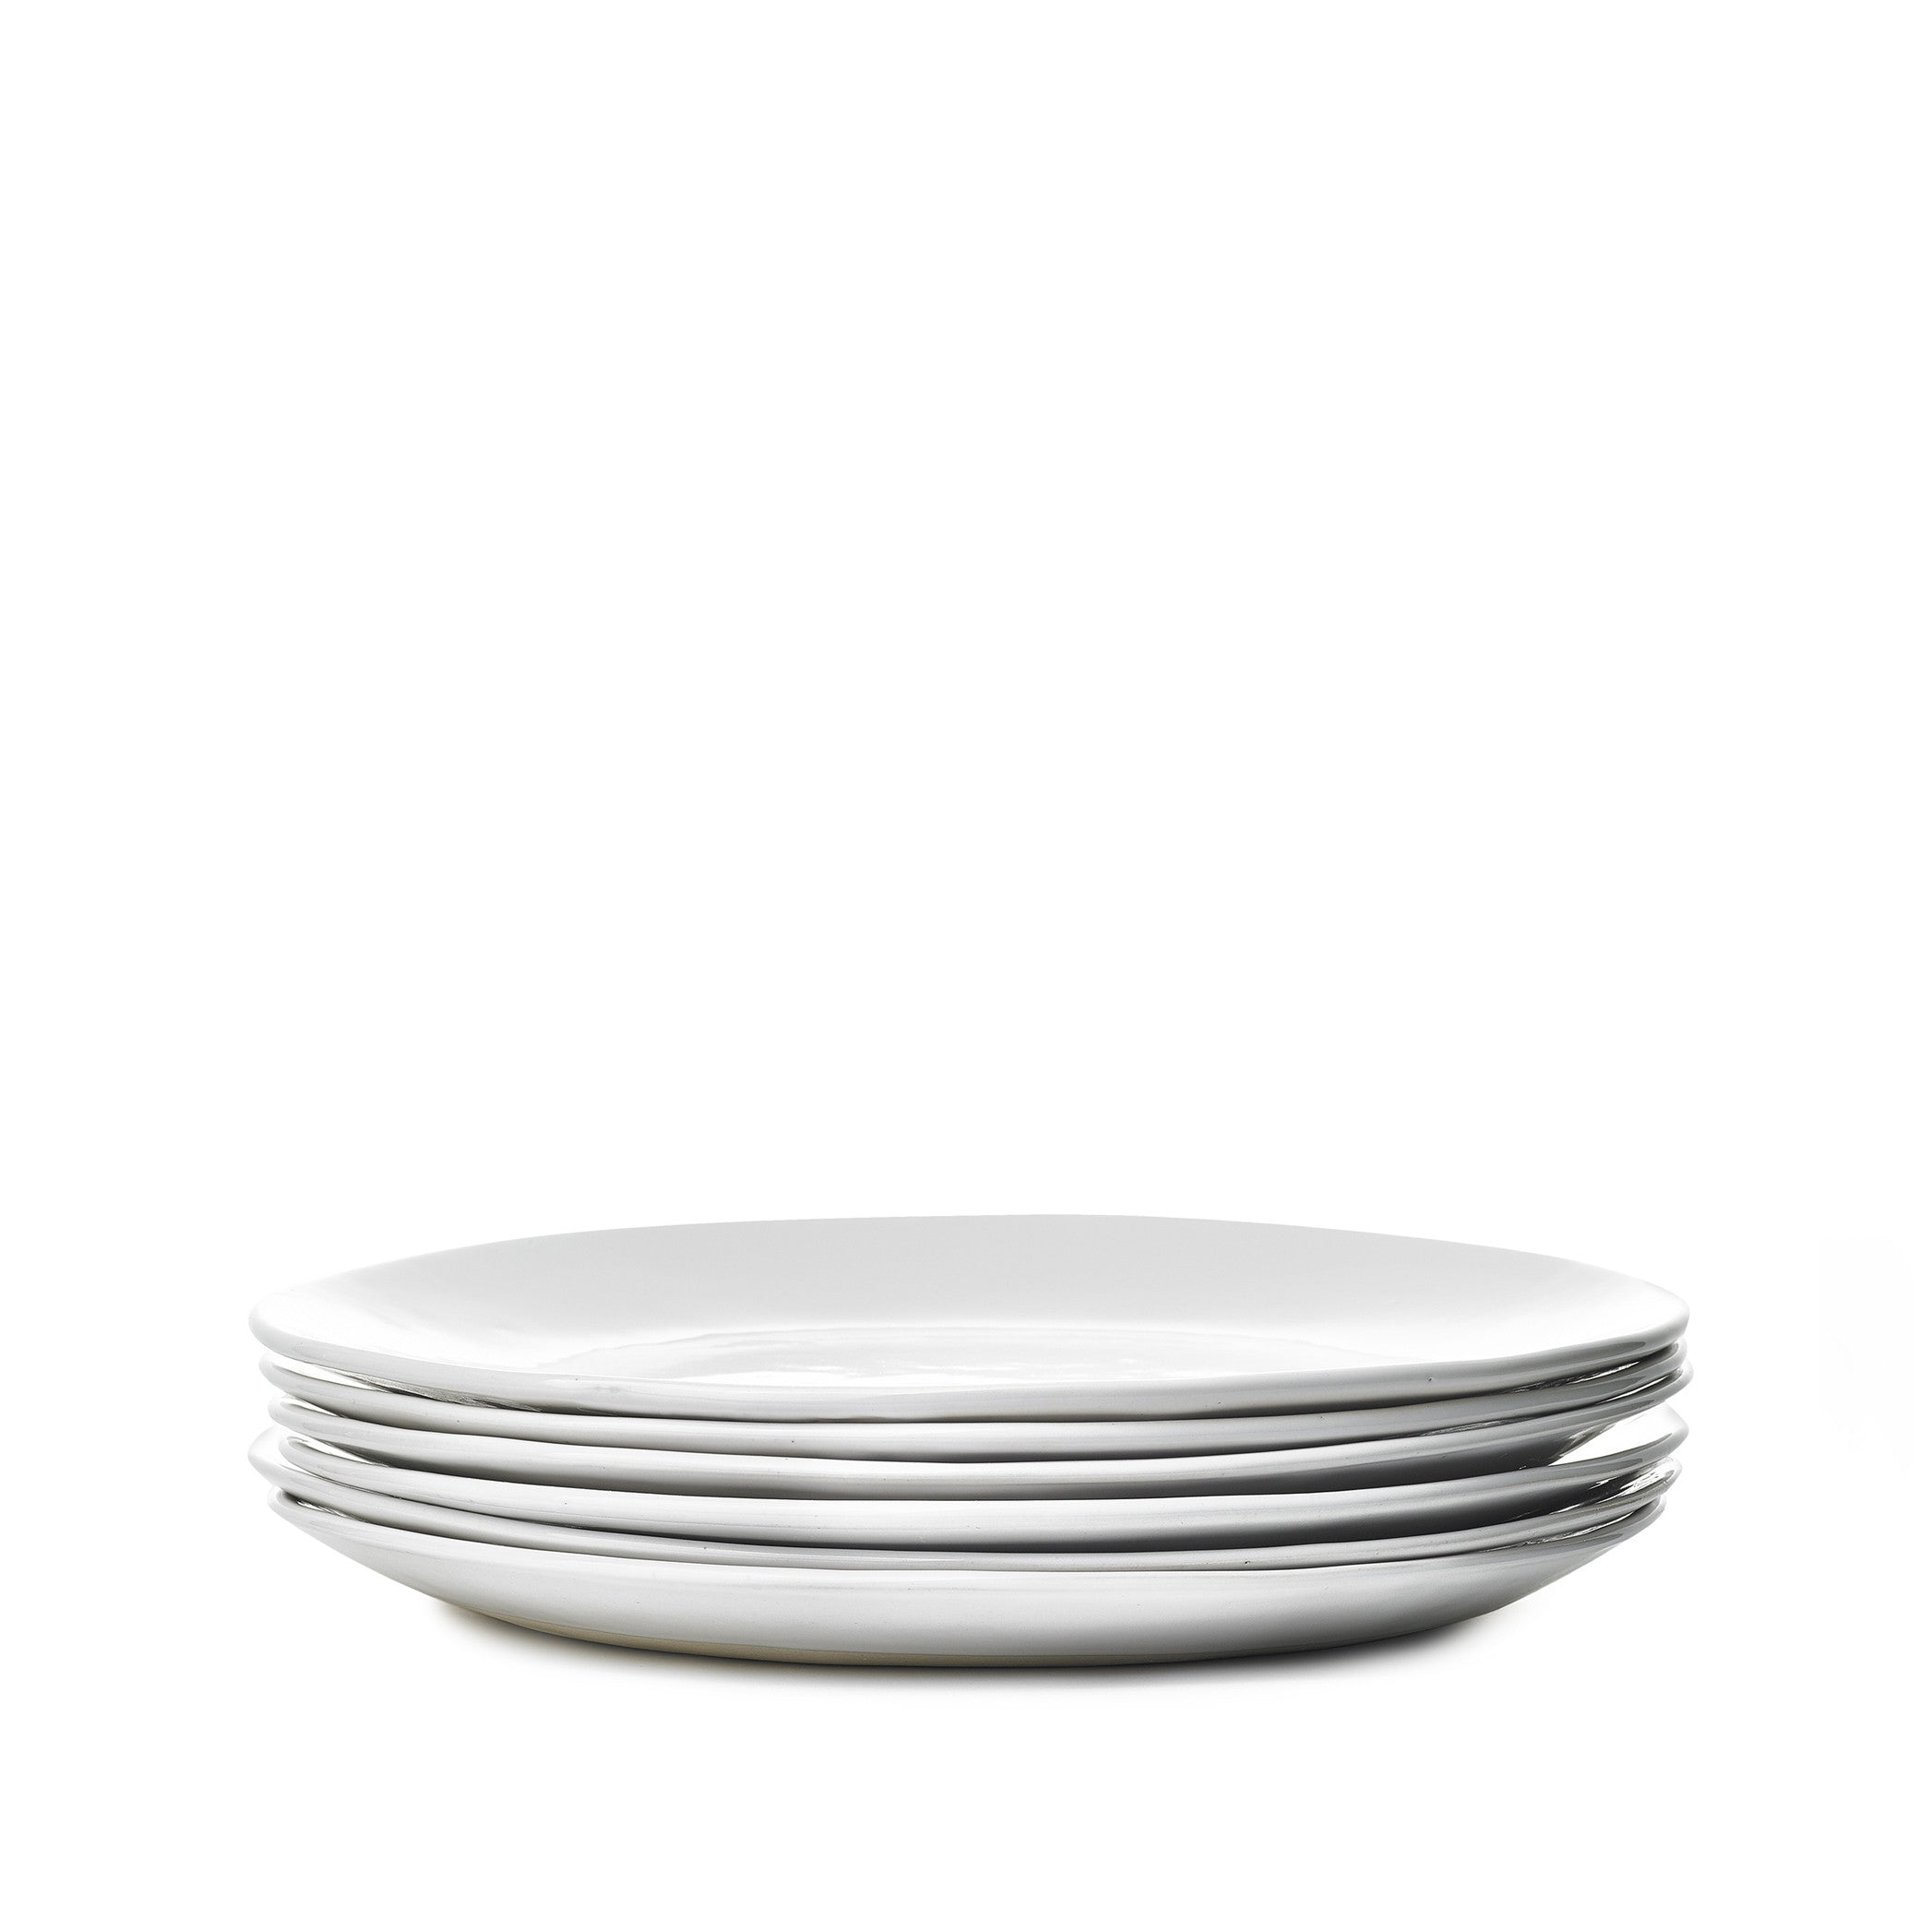 Wonki Ware Dinner Plate in White, 28cm